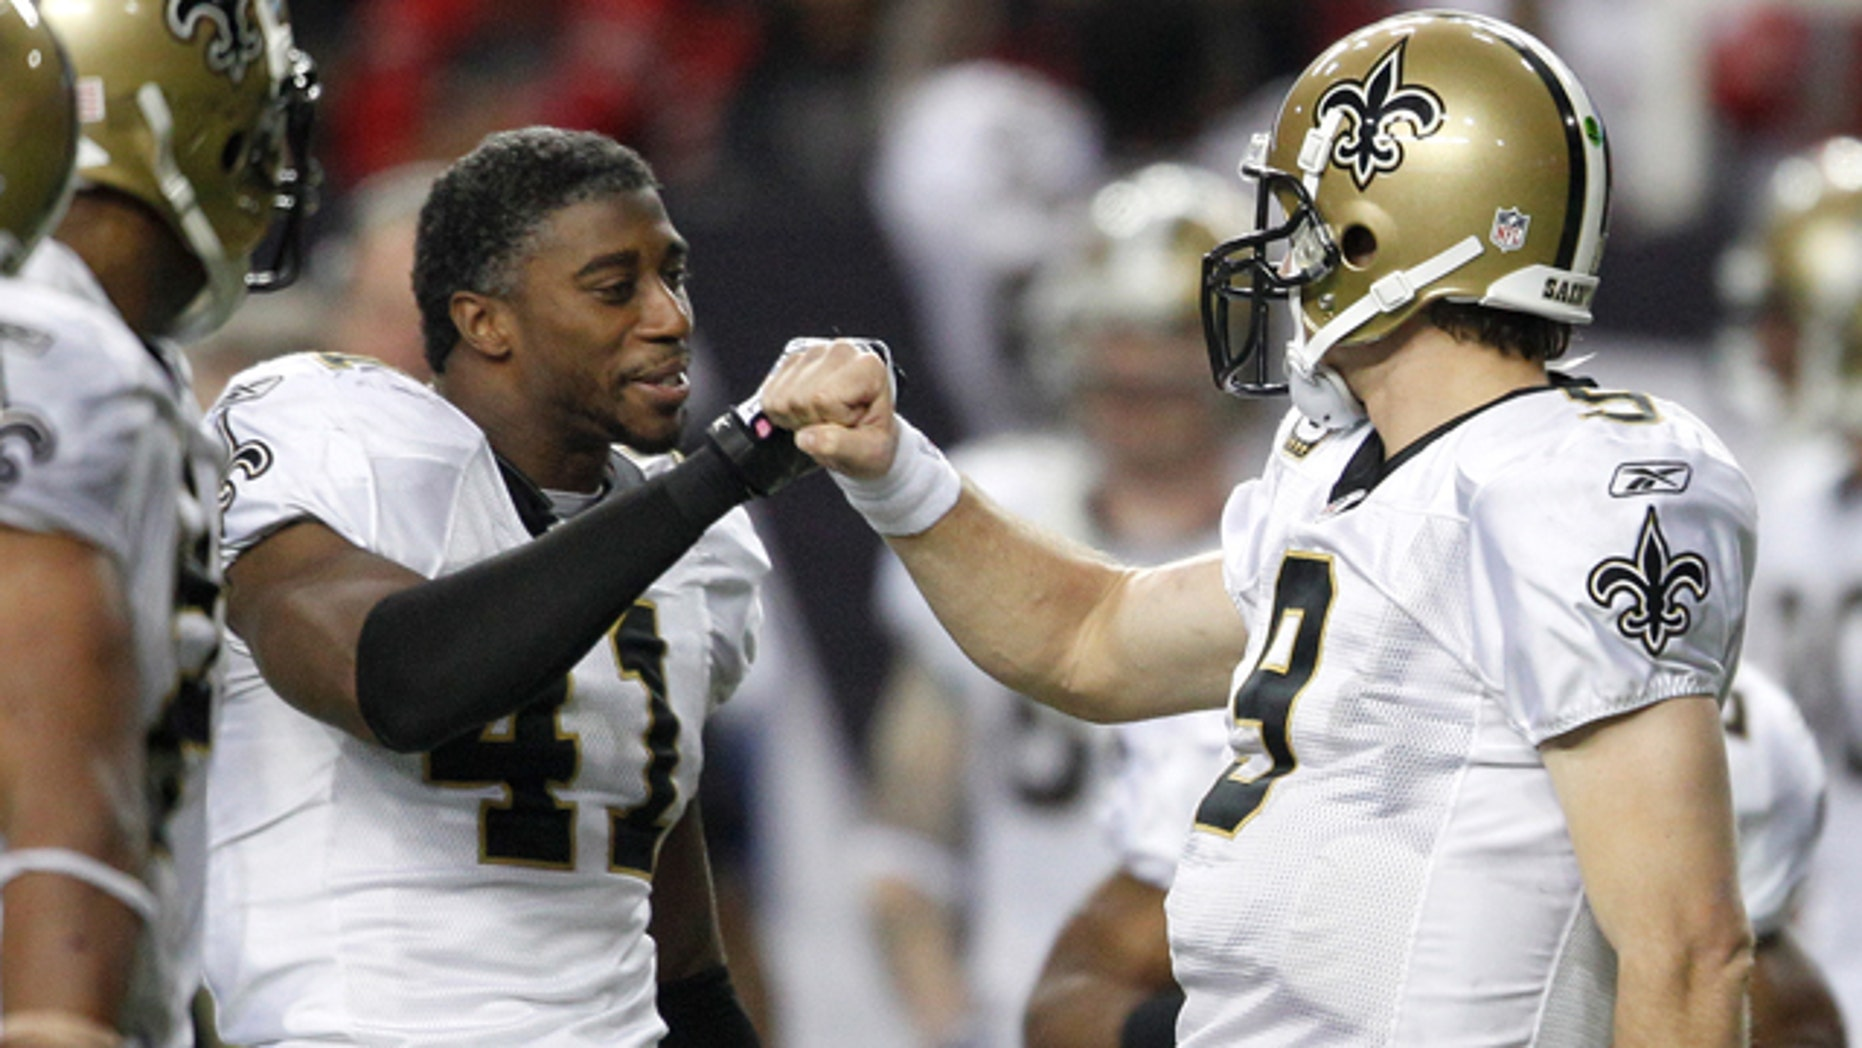 New Orleans Saints quarterback Drew Brees, right, celebrates with Roman Harper (41) in the final seconds of an NFL football game against the Atlanta Falcons on Monday, Dec. 27, 2010, in Atlanta. New Orleans won 17-14. (AP Photo/David Goldman)